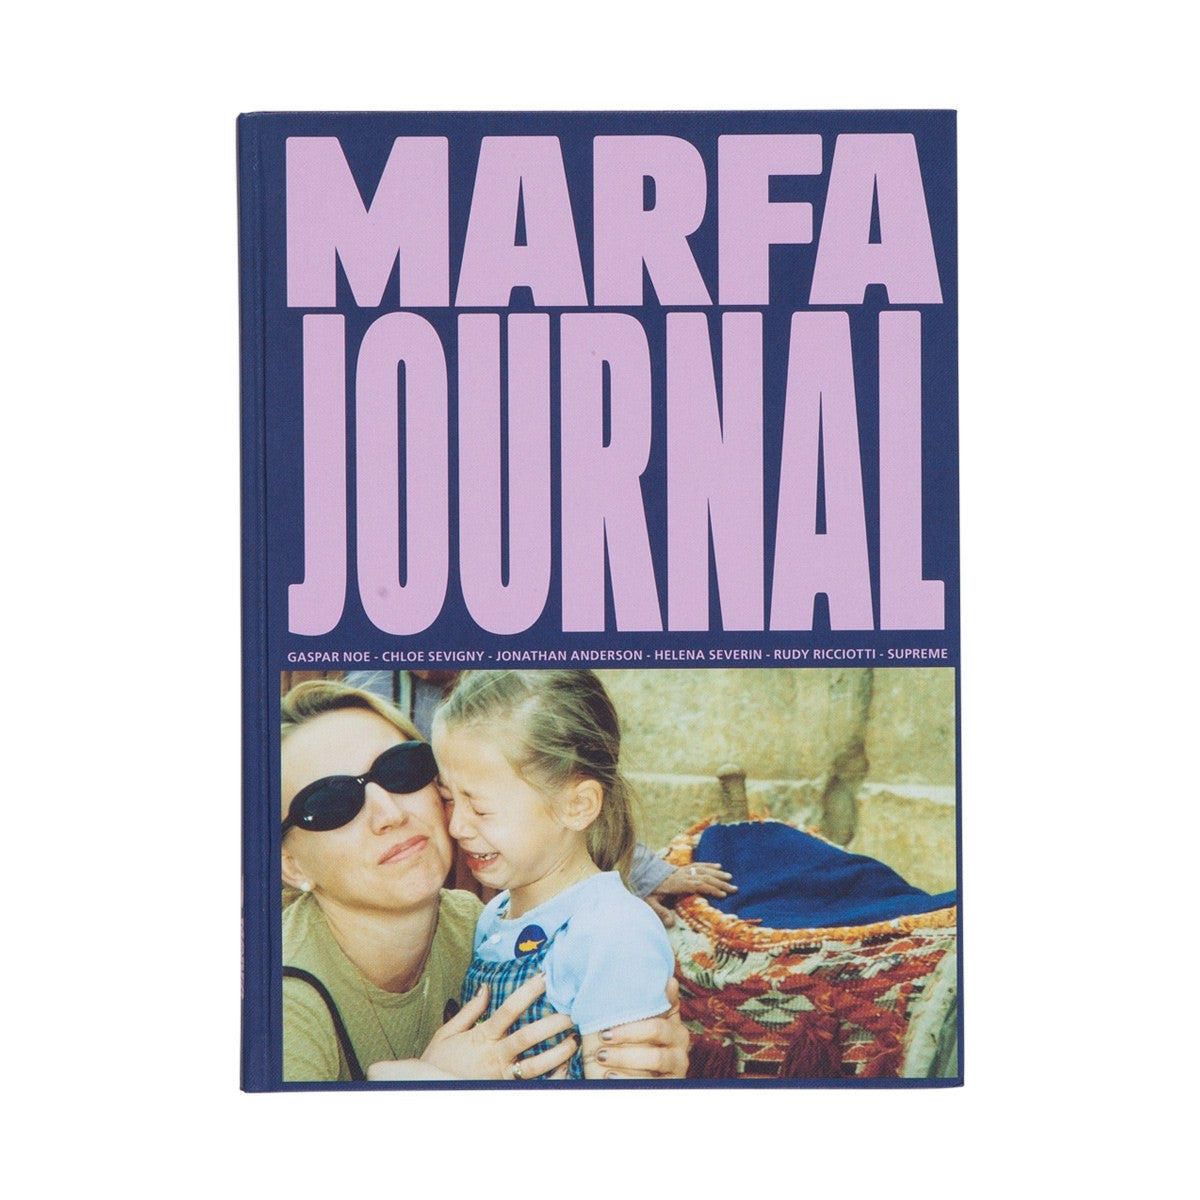 MARFA JOURNAL 03 (MARFAMILY in Egypte cover)